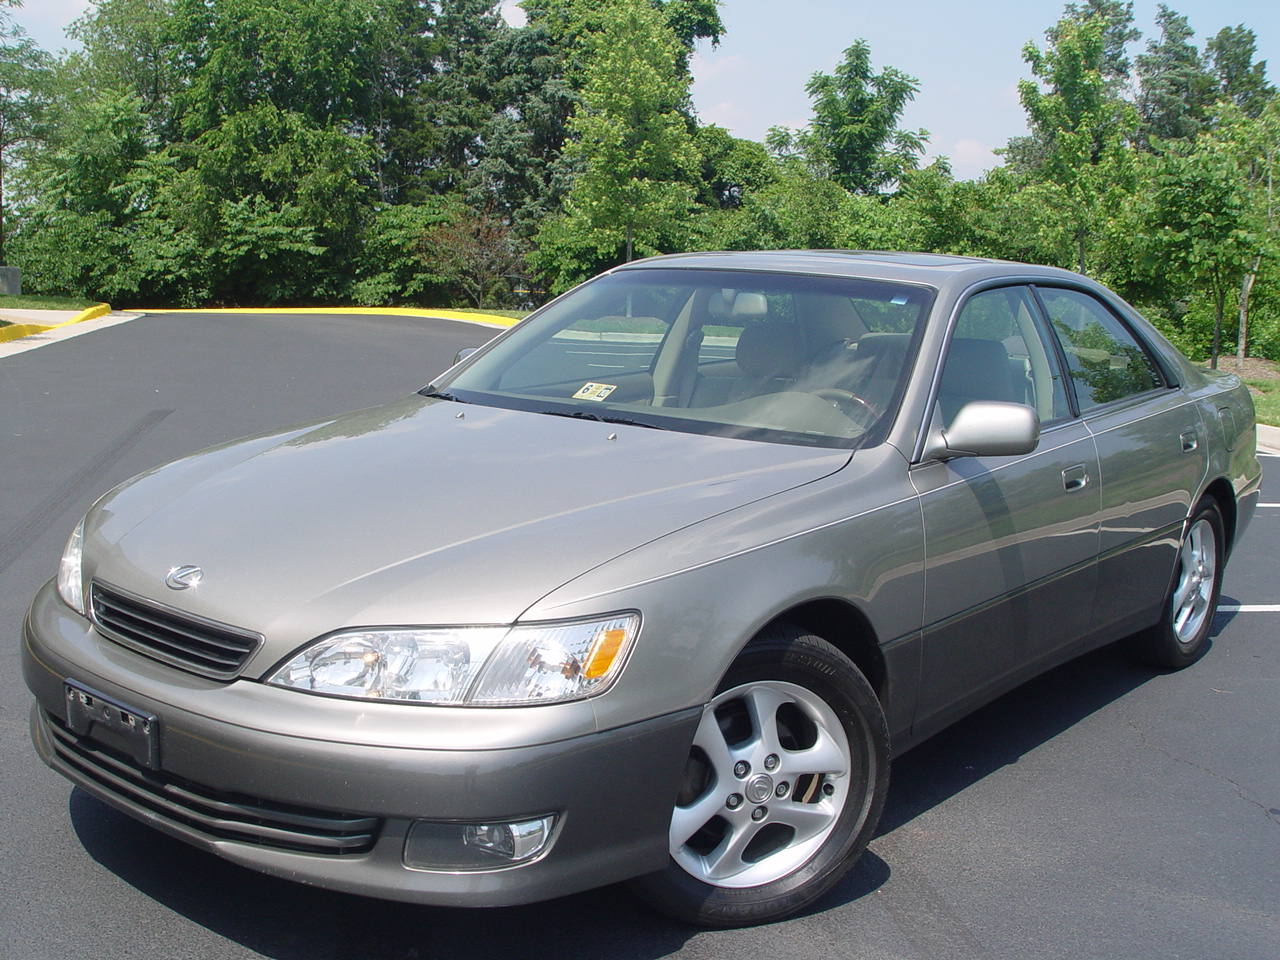 Picture of 2001 Lexus ES 300 Base